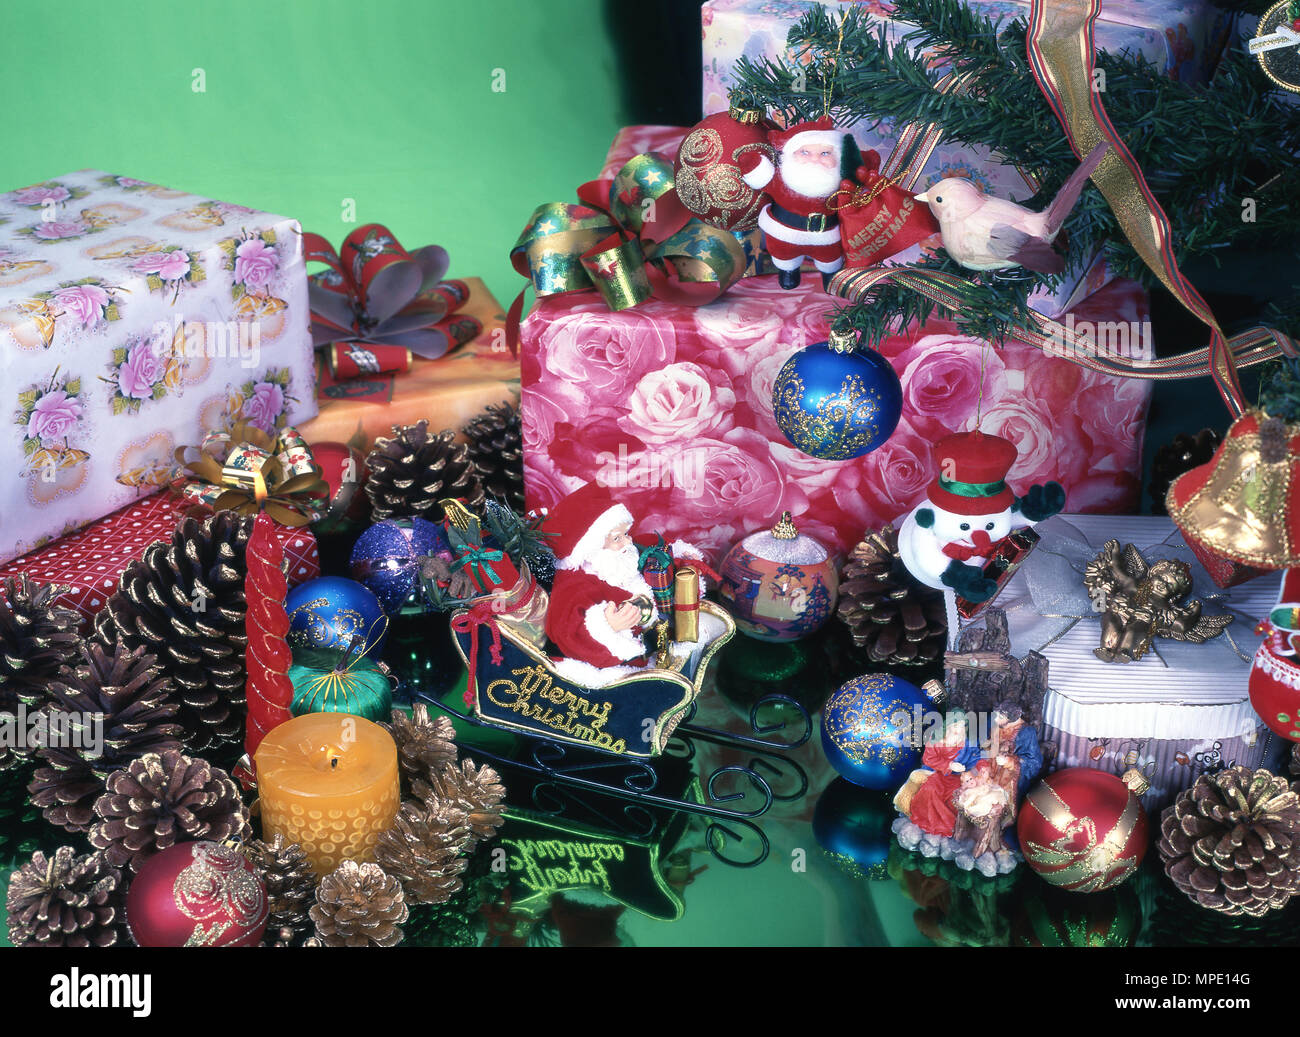 Christmas ornaments, gift boxes Stock Photo 185934352 , Alamy